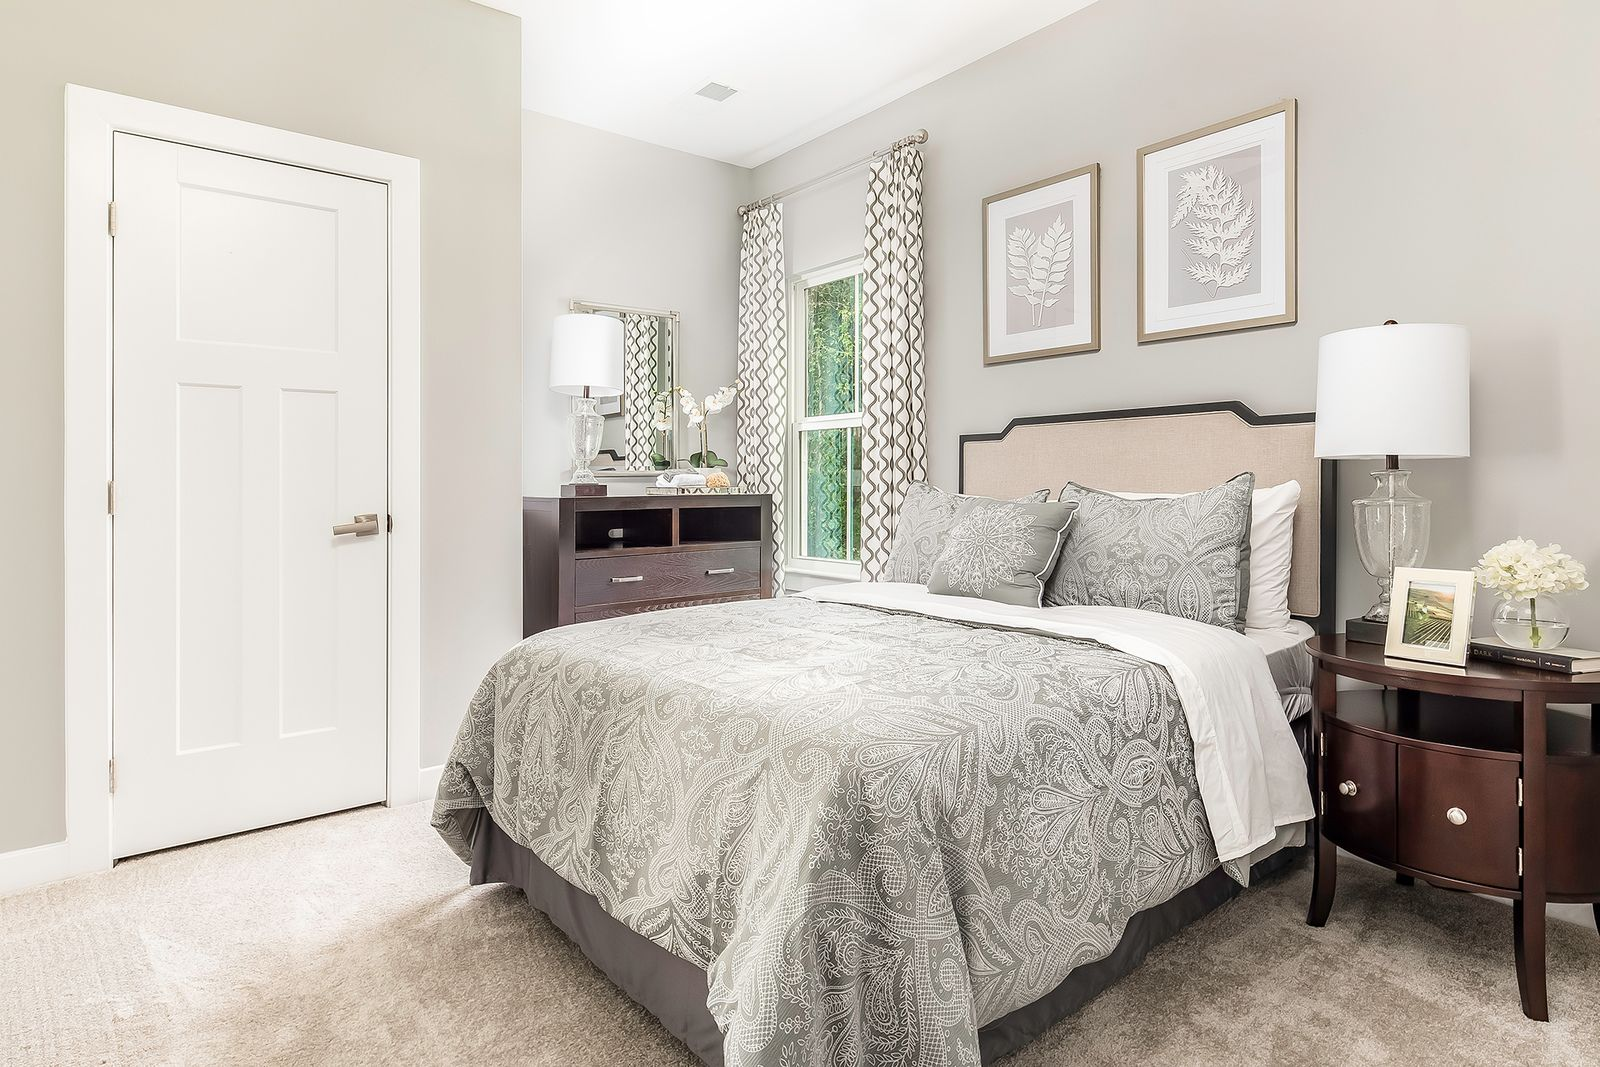 Bedroom featured in the Hudson By Ryan Homes in Washington, MD